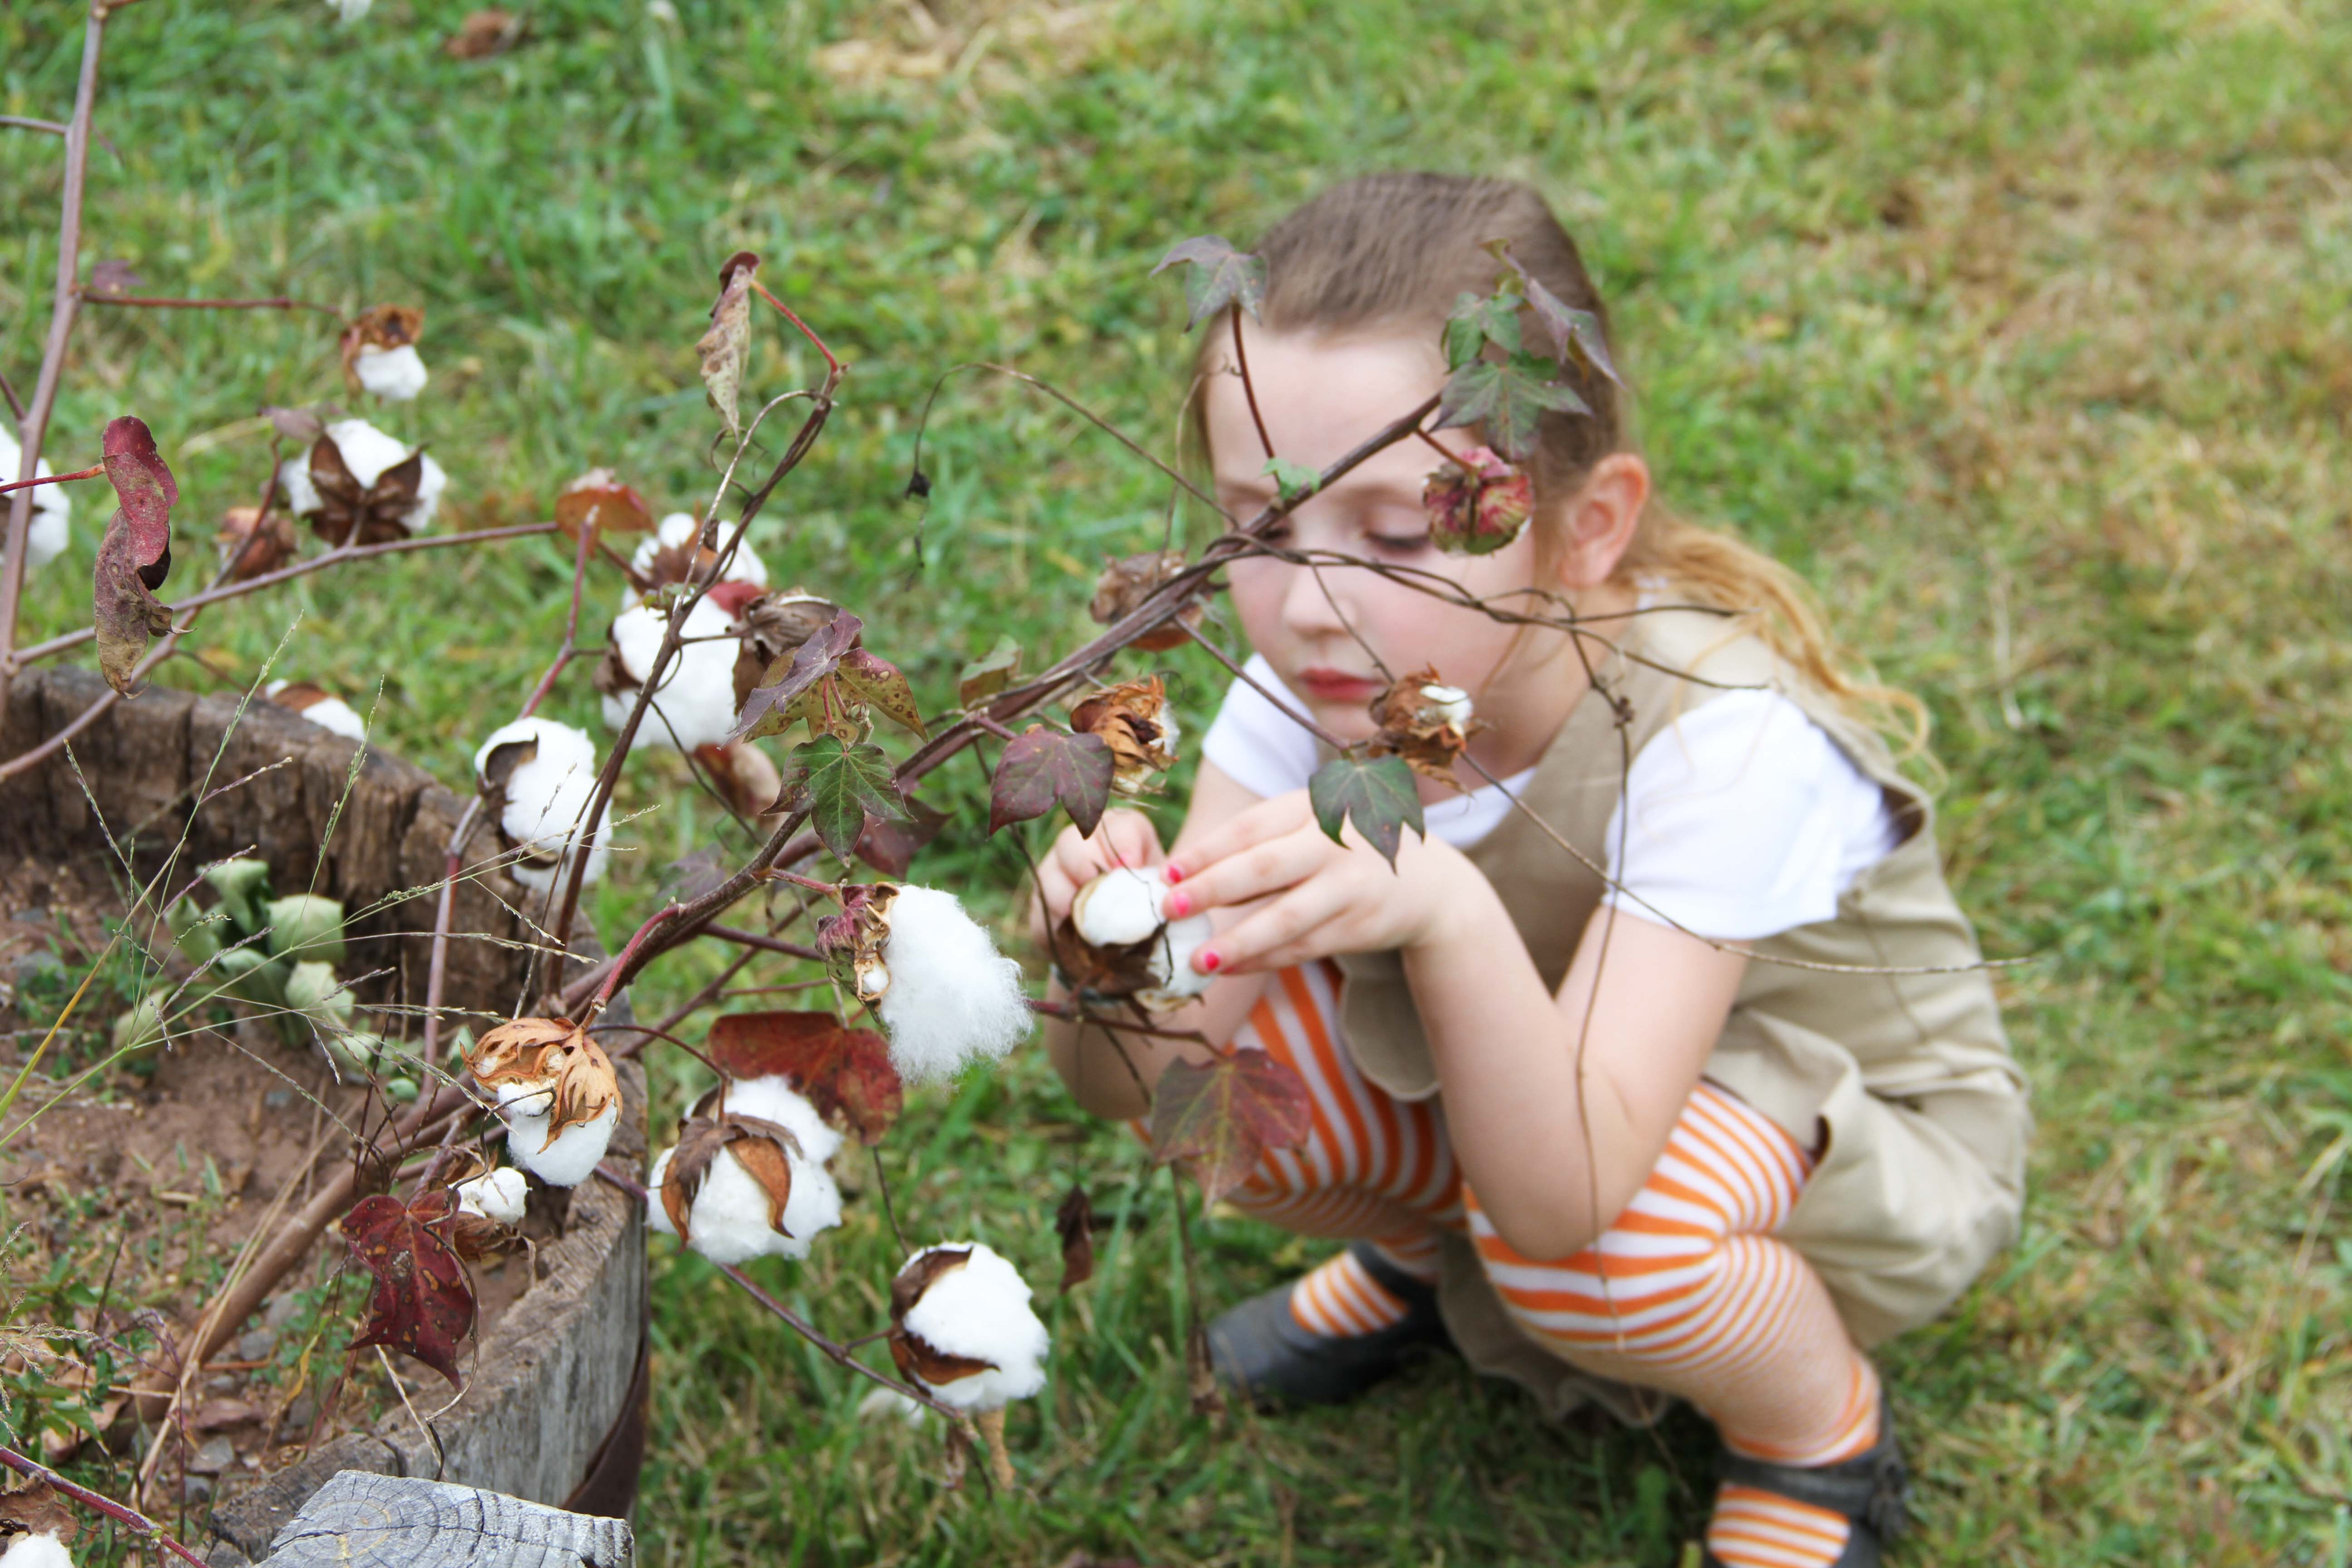 Fluffy with cotton plant